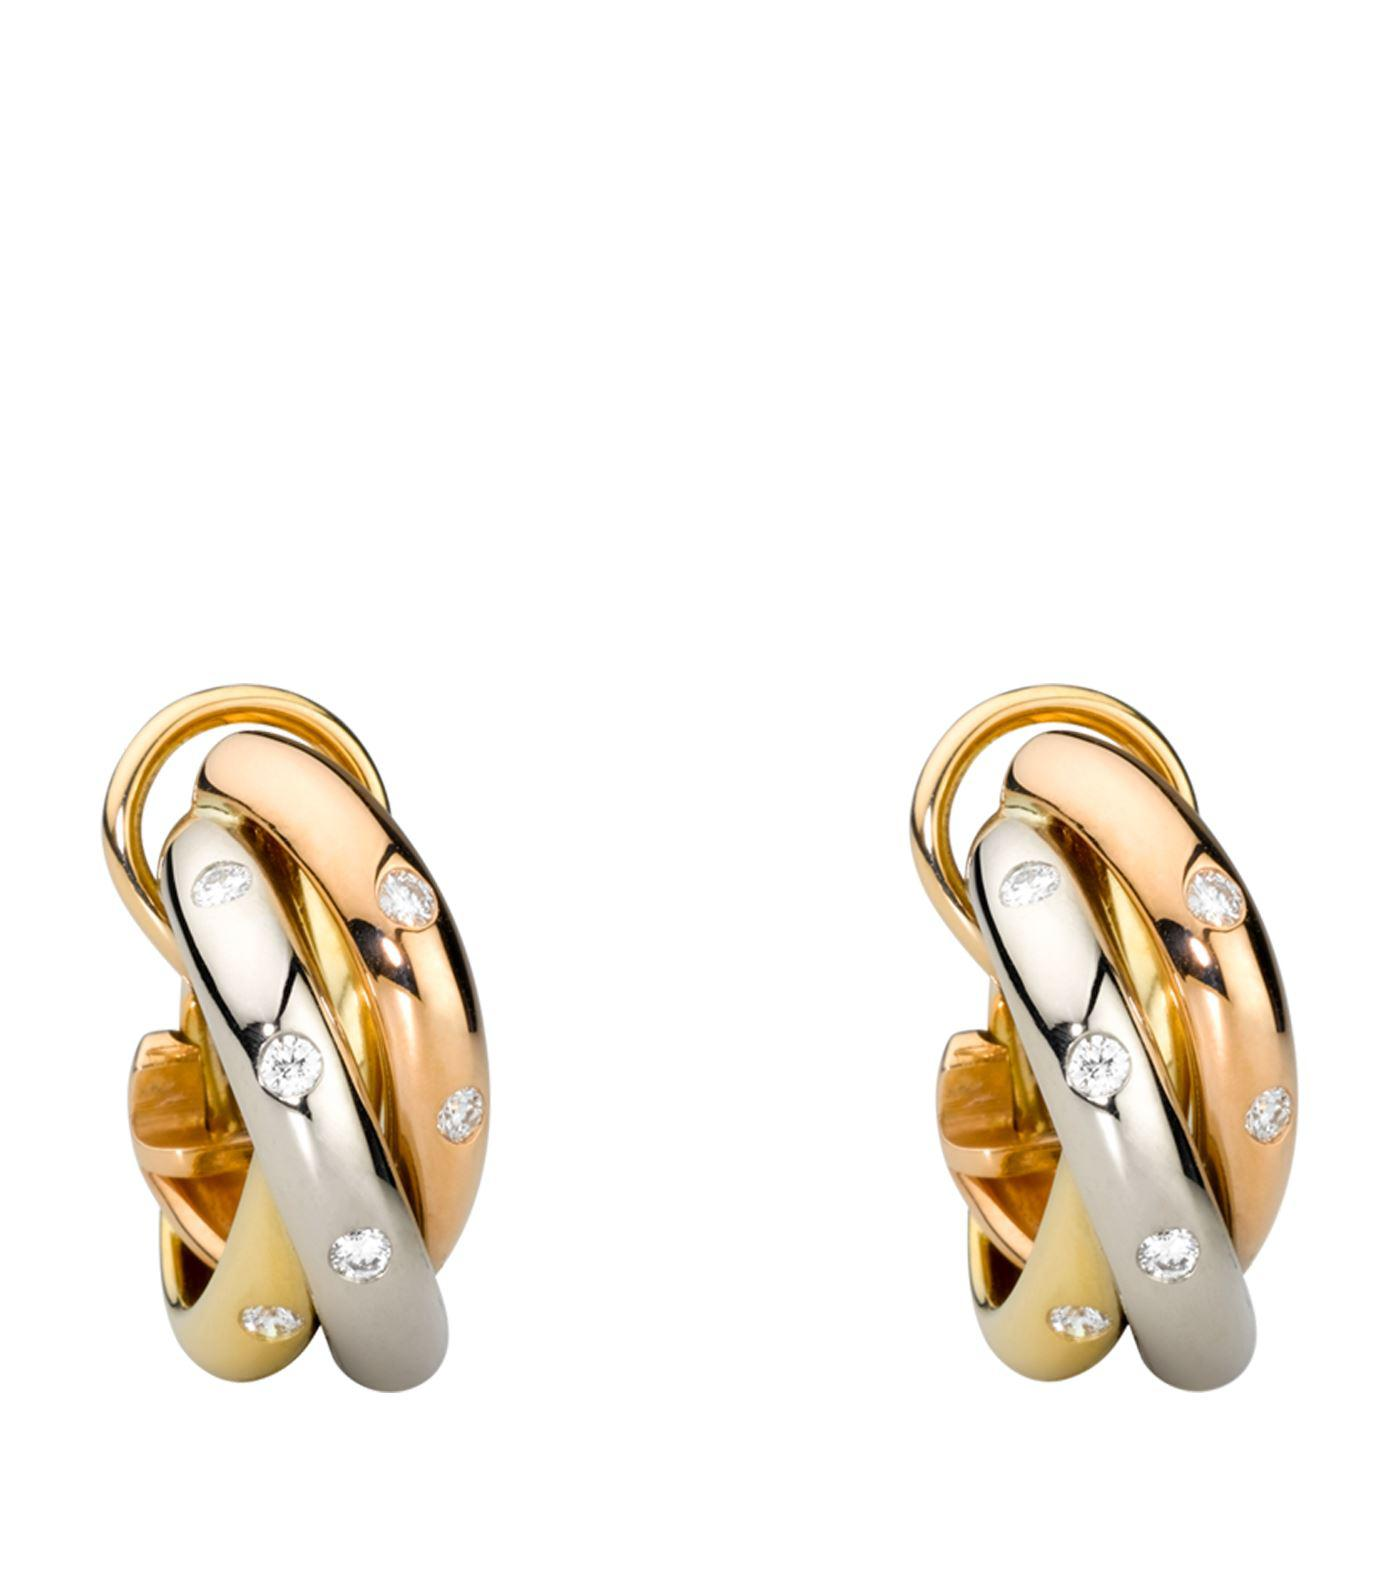 free product jewelry de cartier shipping watches today gold trinity estate overstock three tone earrings